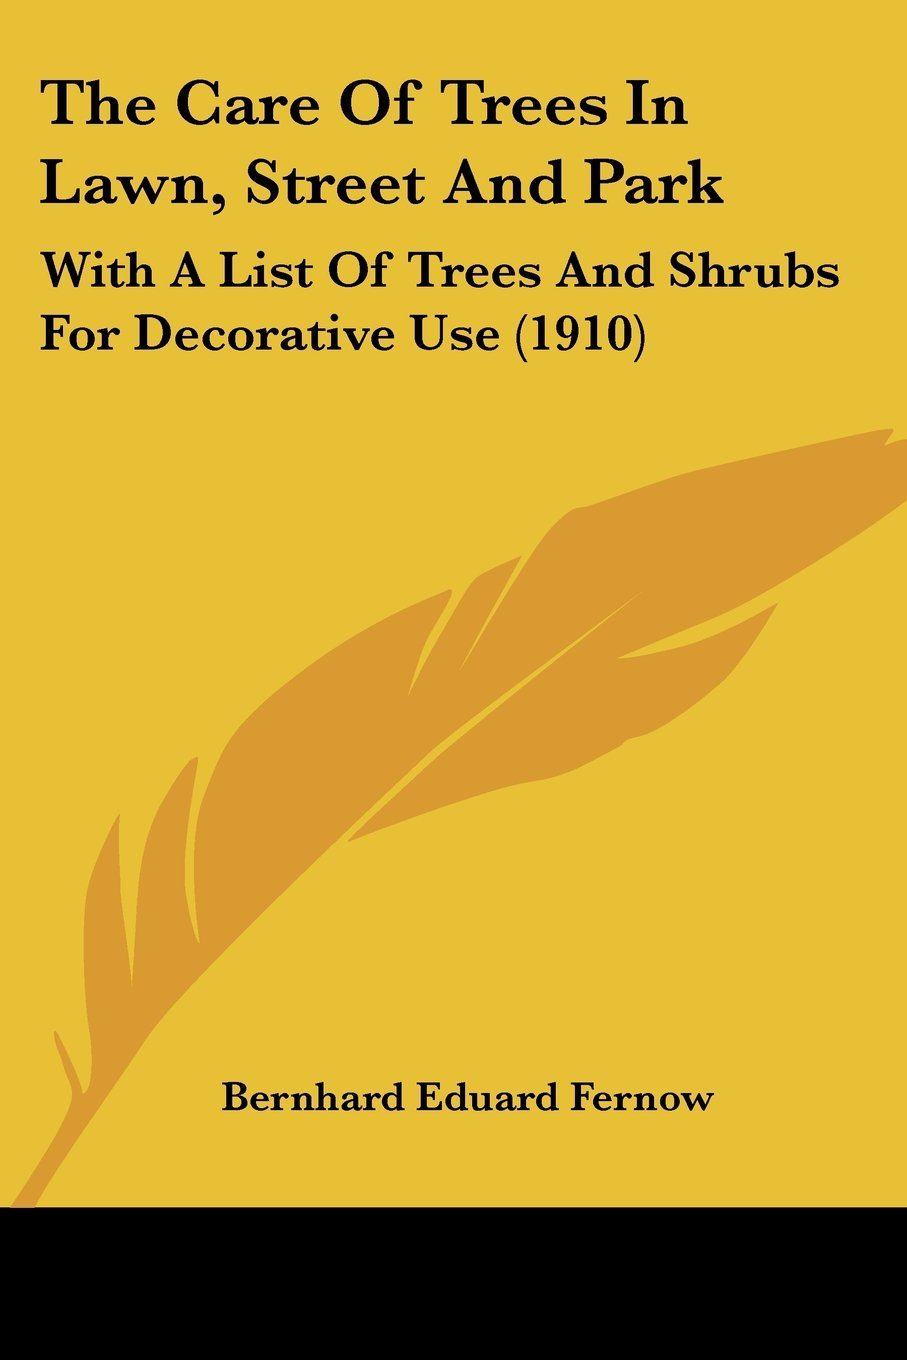 The Care Of Trees In Lawn, Street And Park: With A List Of Trees And Shrubs For Decorative Use (1910) ebook